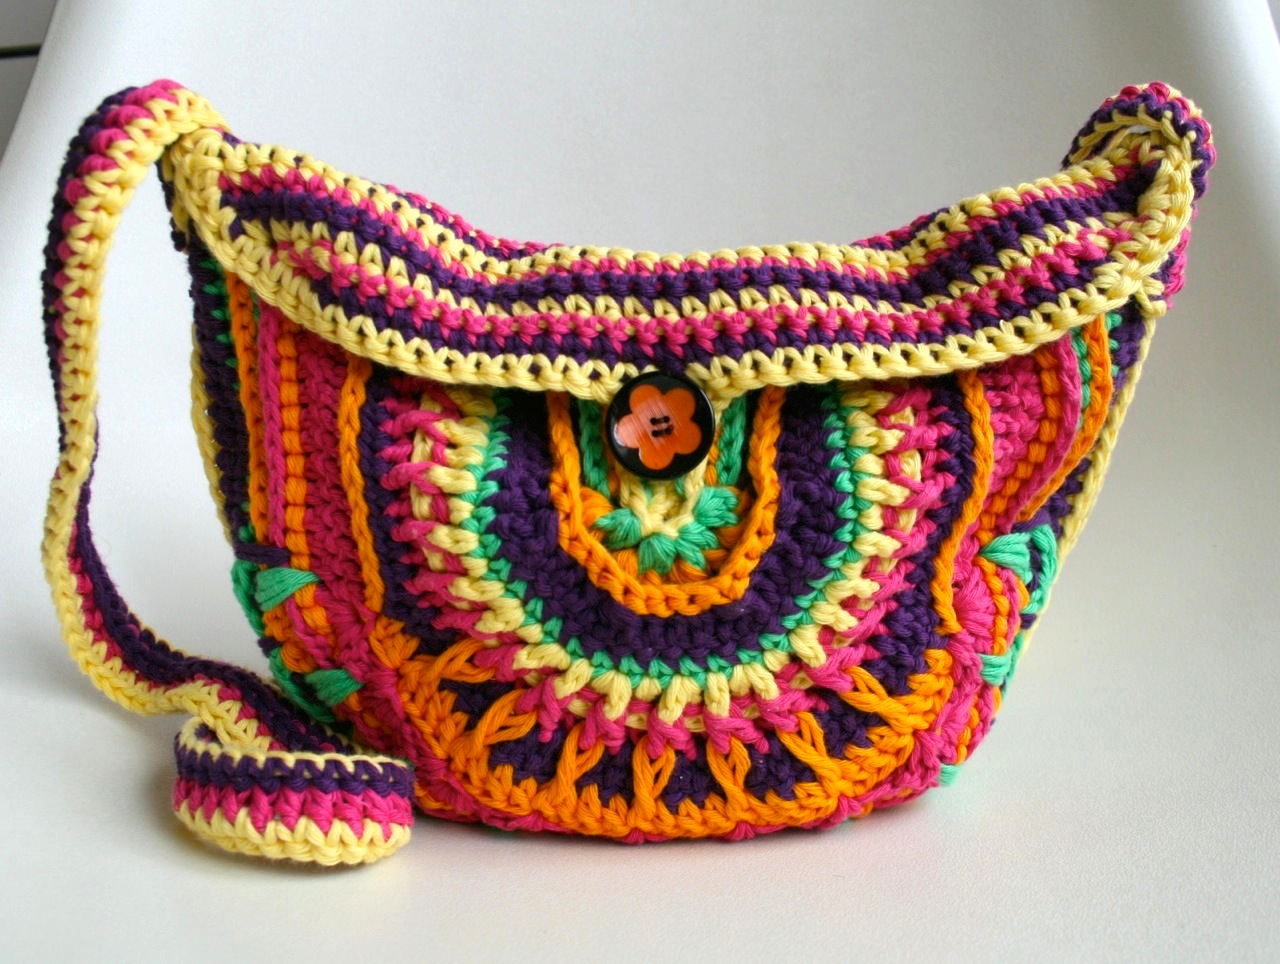 New Crochet Bags : New boho crochet purse pattern... and a new collection of bags ...